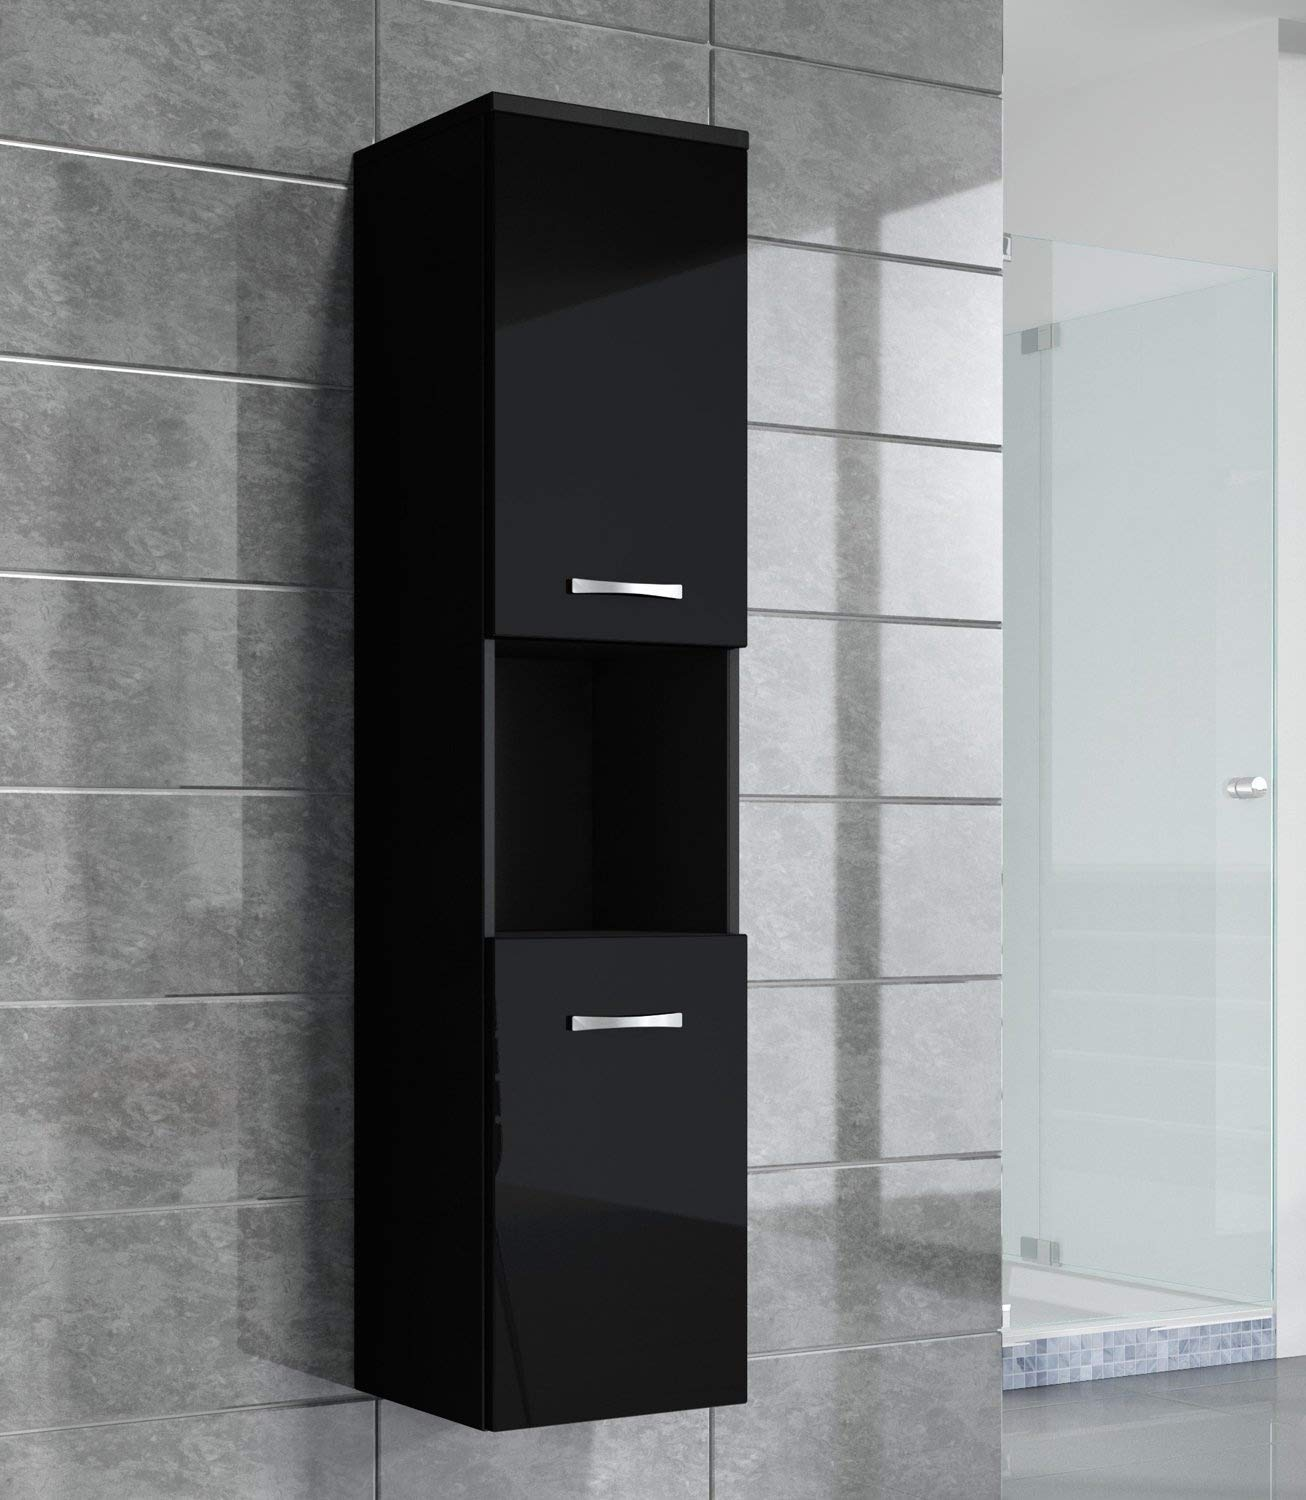 Badplaats Storage cabinet Montreal 131cm height black high gloss - Storage cabinet tall cupboard bathroom furniture